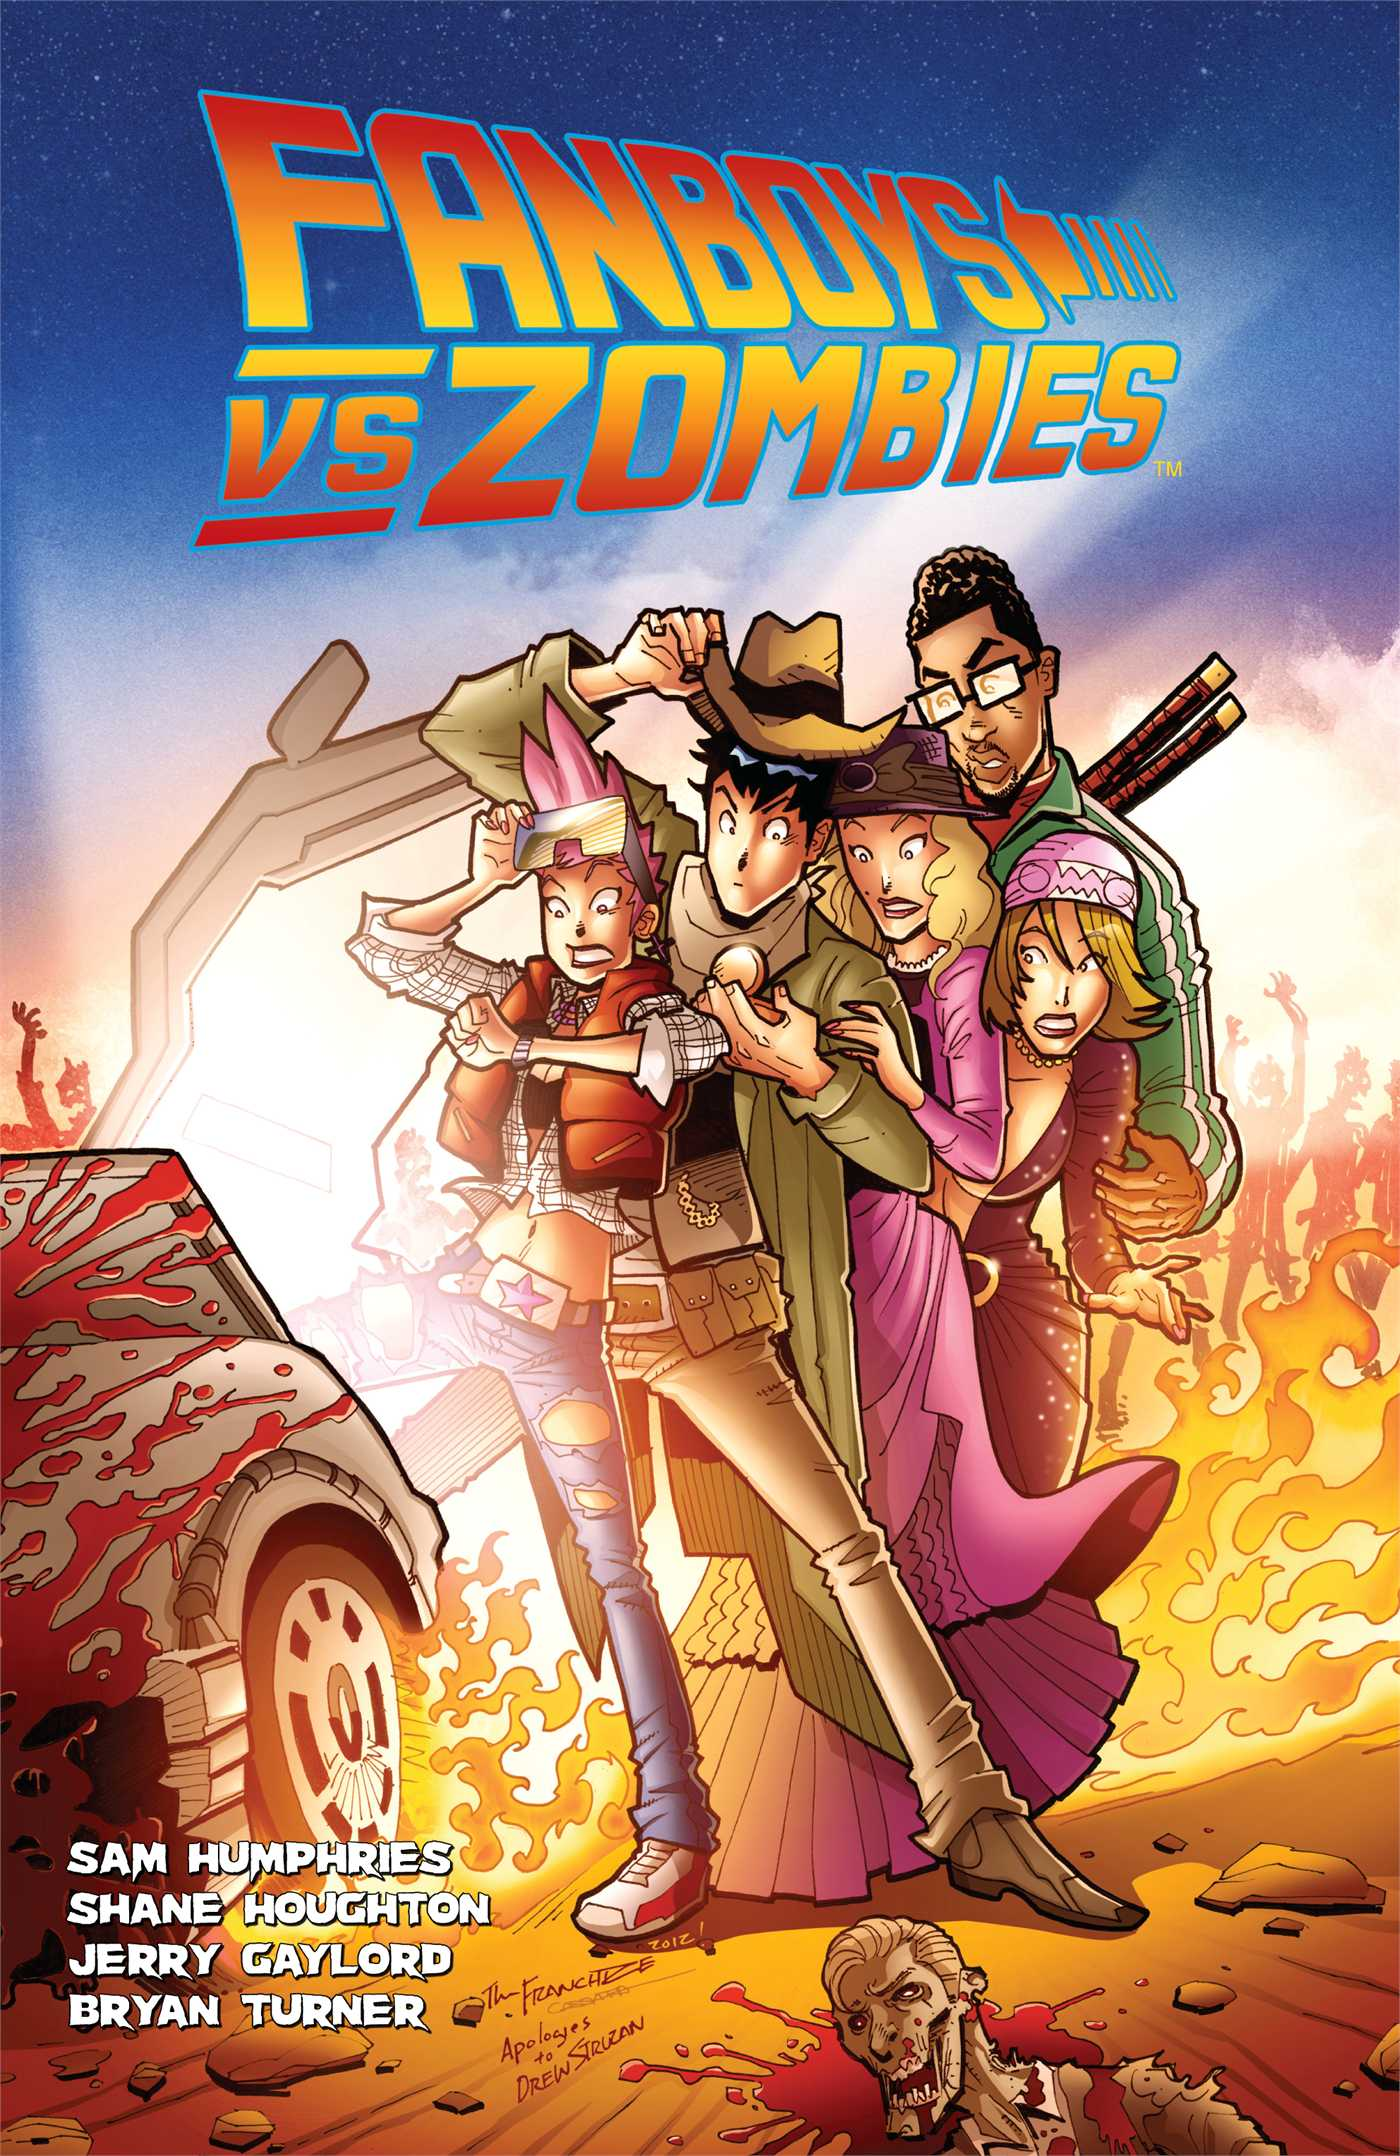 Fanboys-vs-zombies-vol-3-9781608863358_hr